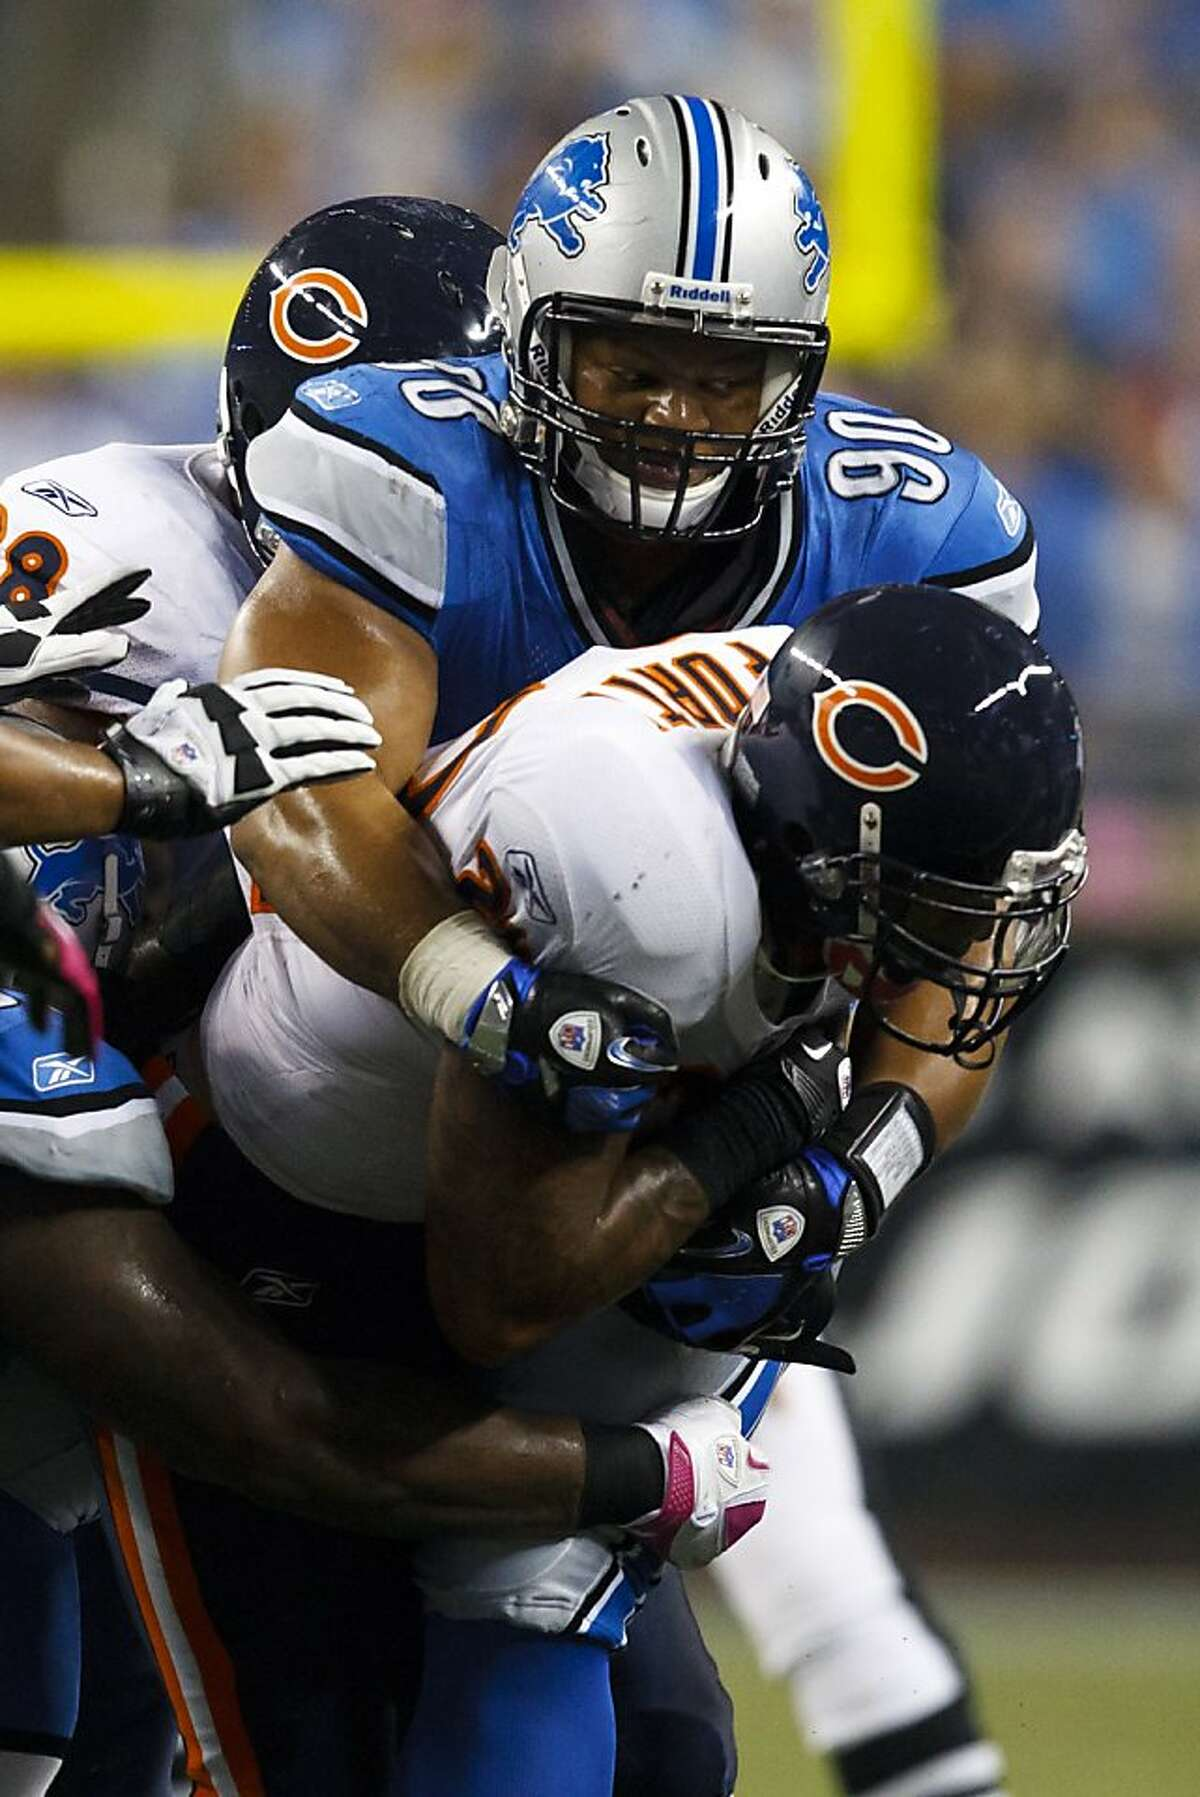 Detroit Lions defensive tackle Ndamukong Suh (90) tackles Chicago Bears running back Matt Forte (22) in the first half of an NFL football game in Detroit, Monday, Oct. 10, 2011. (AP Photo/Rick Osentoski)